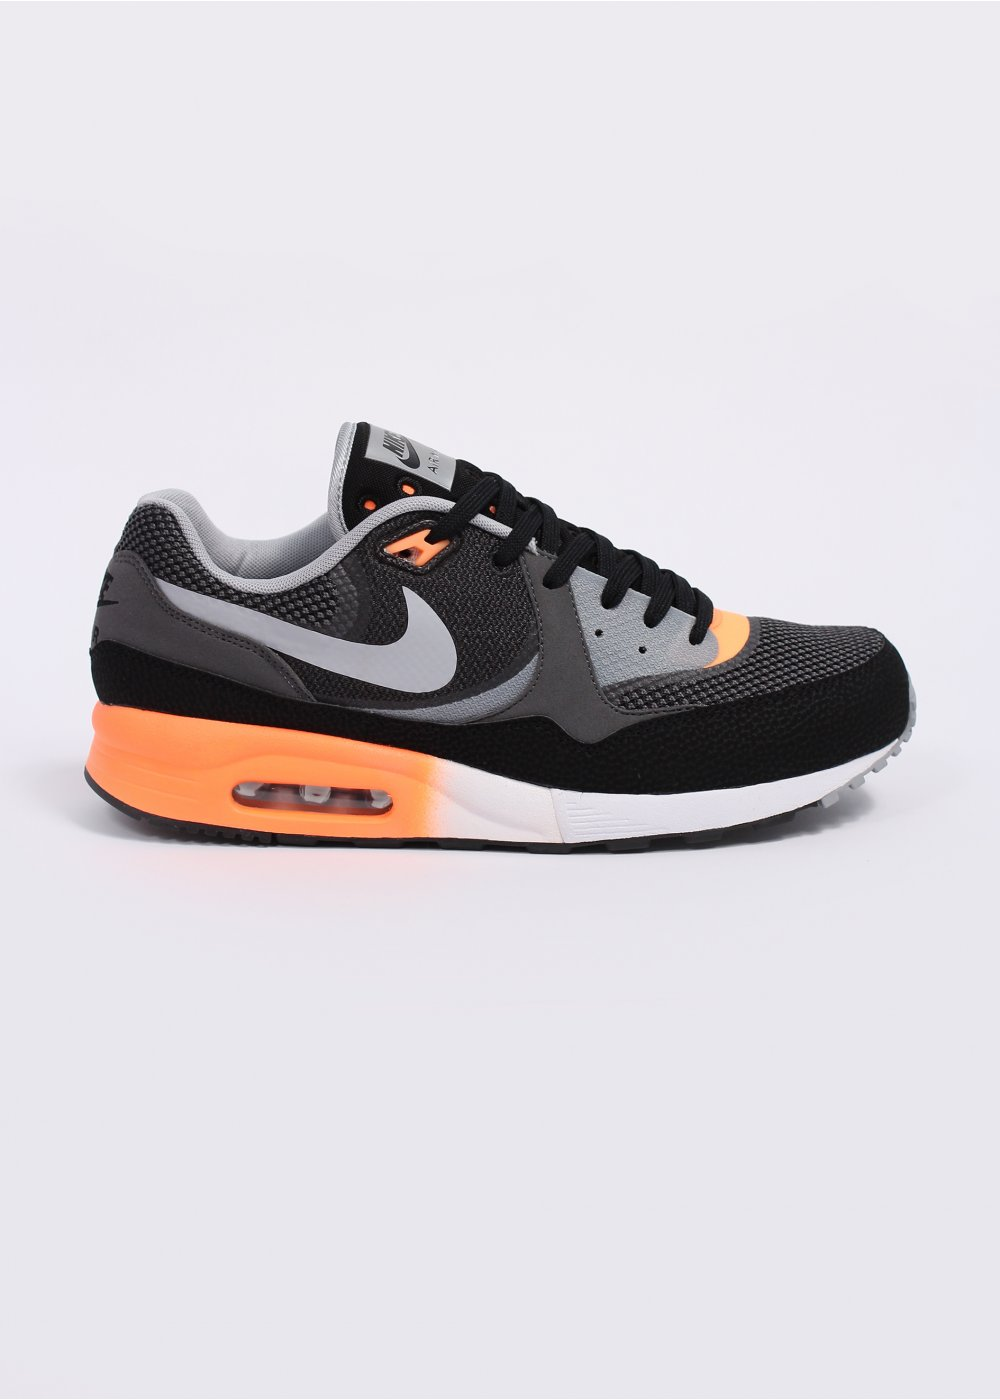 nike air max light c1.0 trainers warehouse